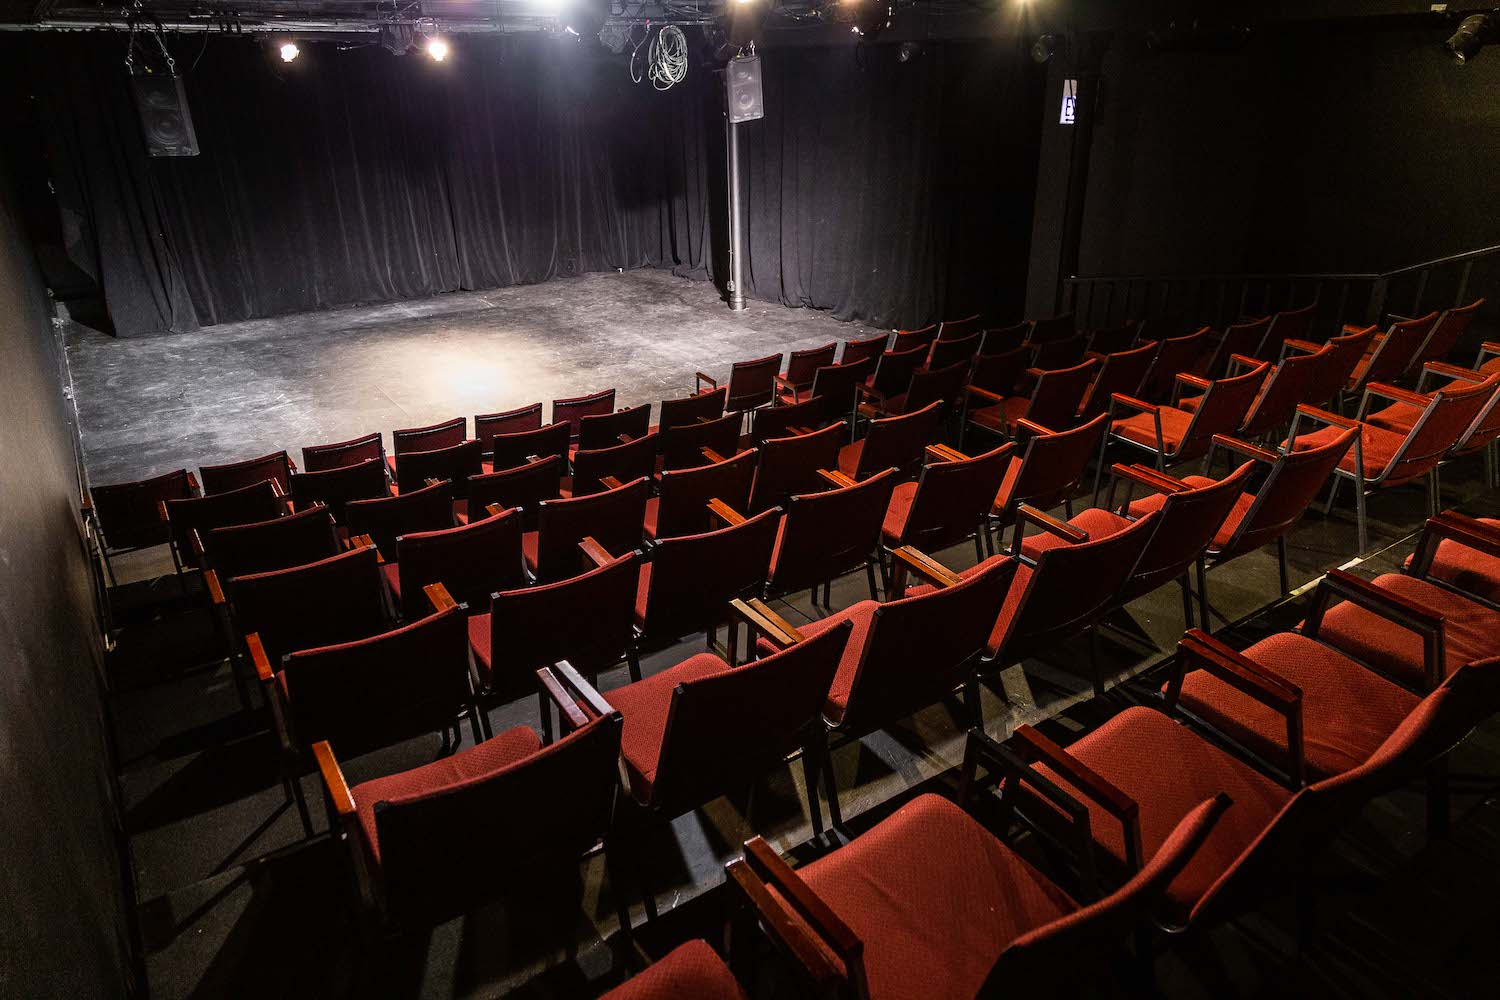 the-den-theatre-ryanmartin-thedentheatre-chicago-wicker-park-comedyshow-standup-comedy-music-must-see-performance-music-venue-book-theden-26.jpg